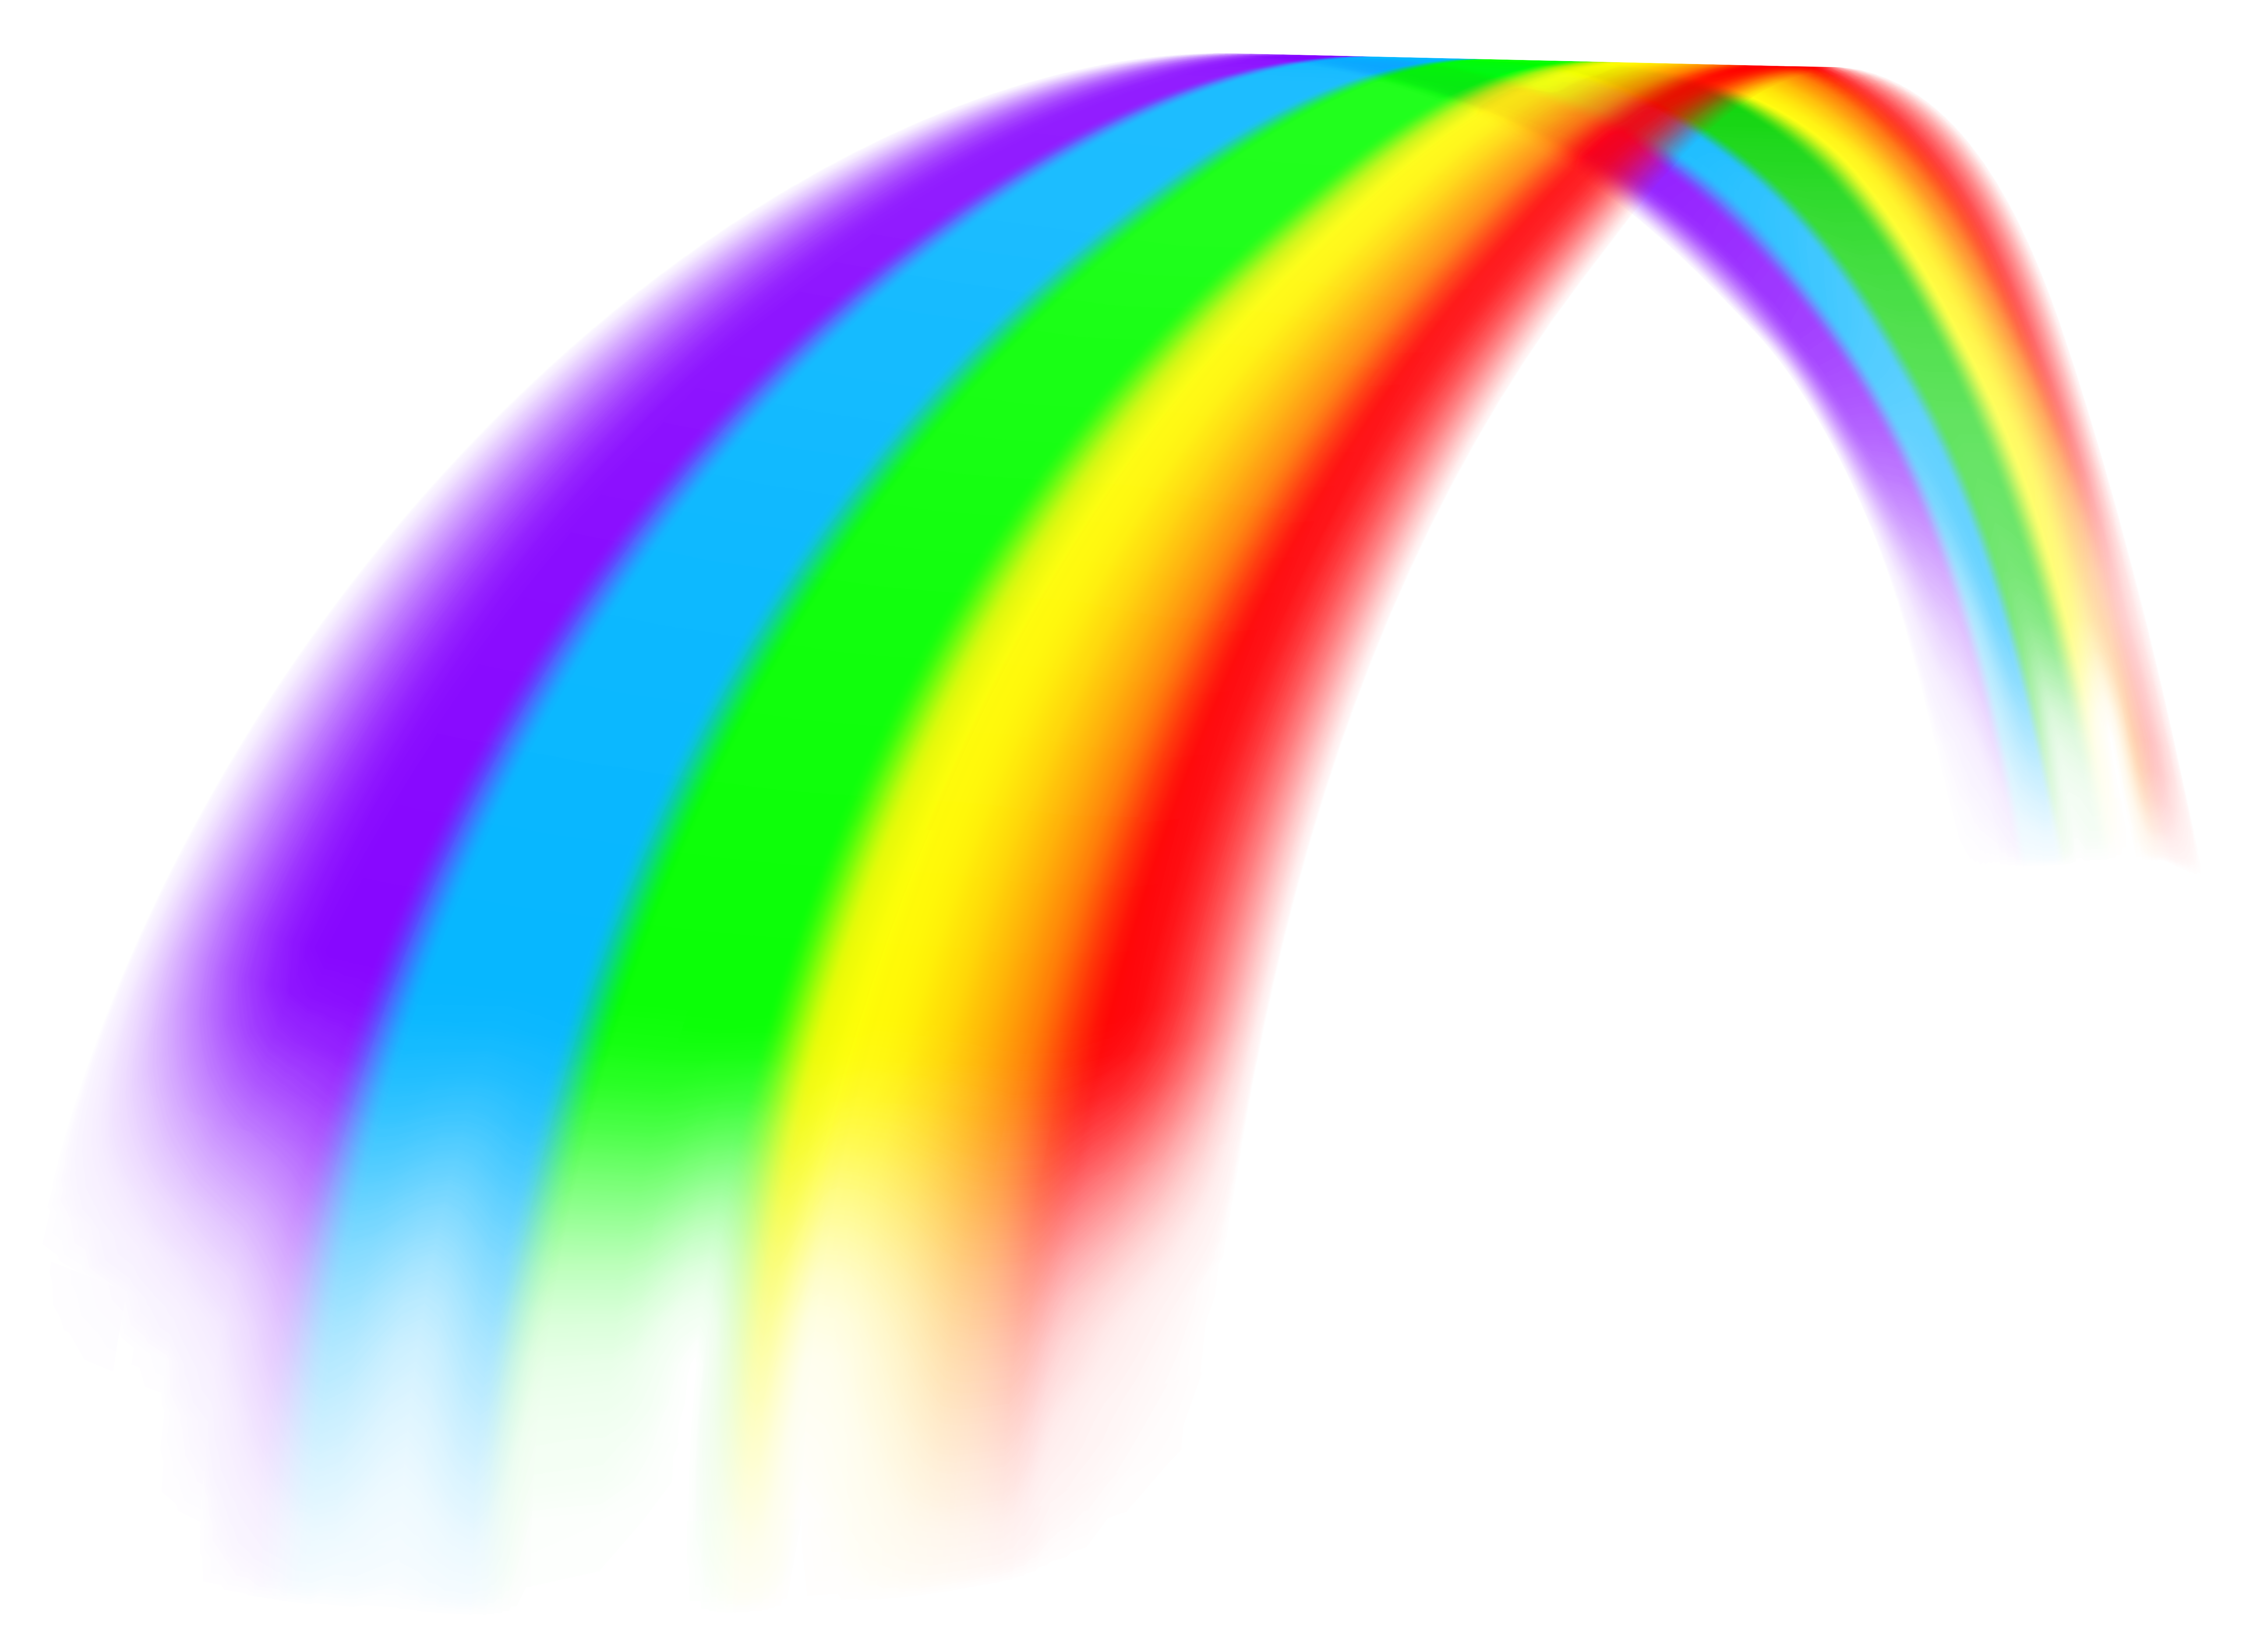 Rainbow and sun clipart large png freeuse Rainbow Large Transparent PNG Clipart | Gallery Yopriceville - High ... png freeuse